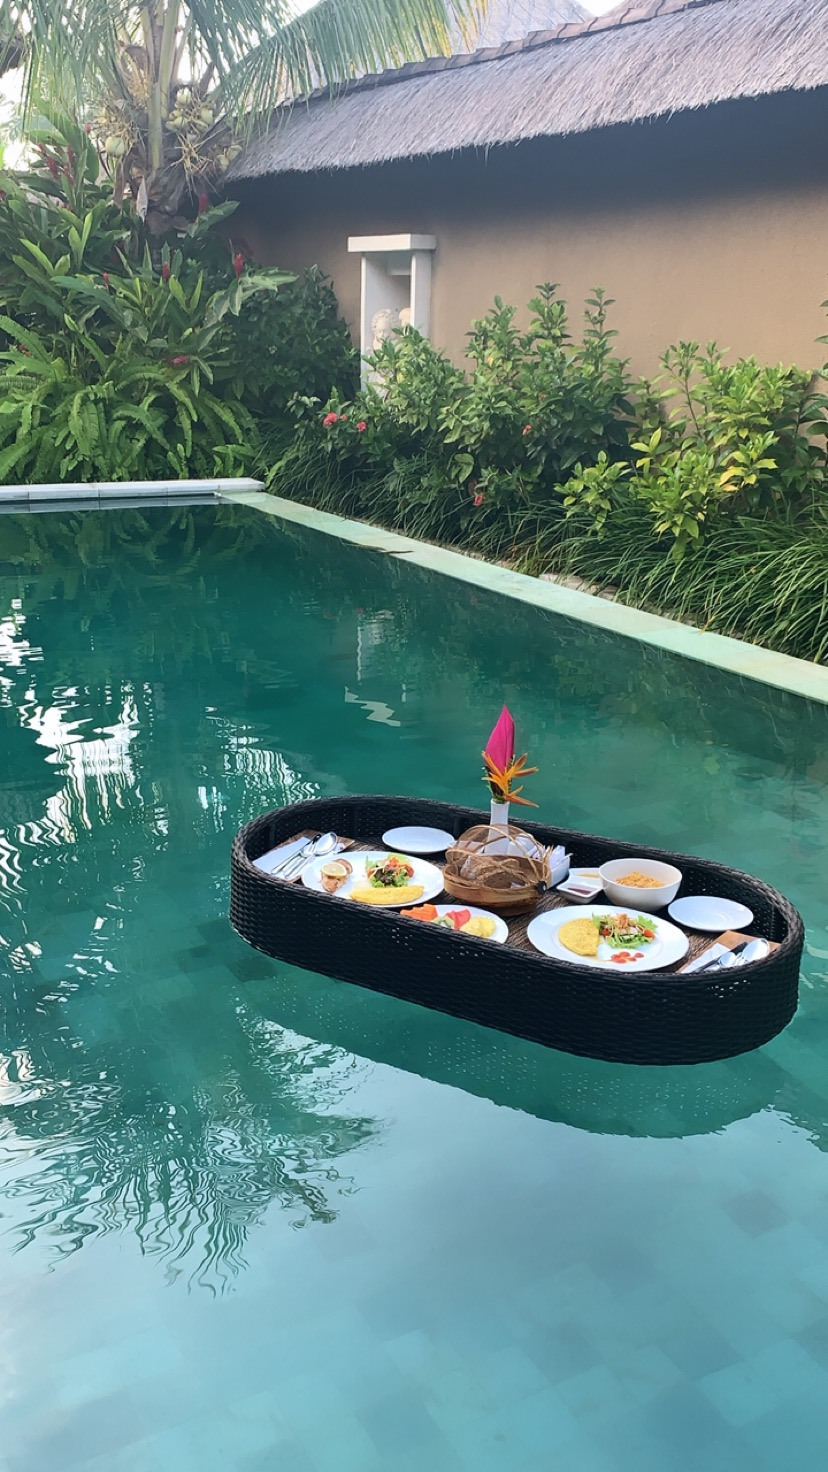 I don't want breakfast unless it's floating!